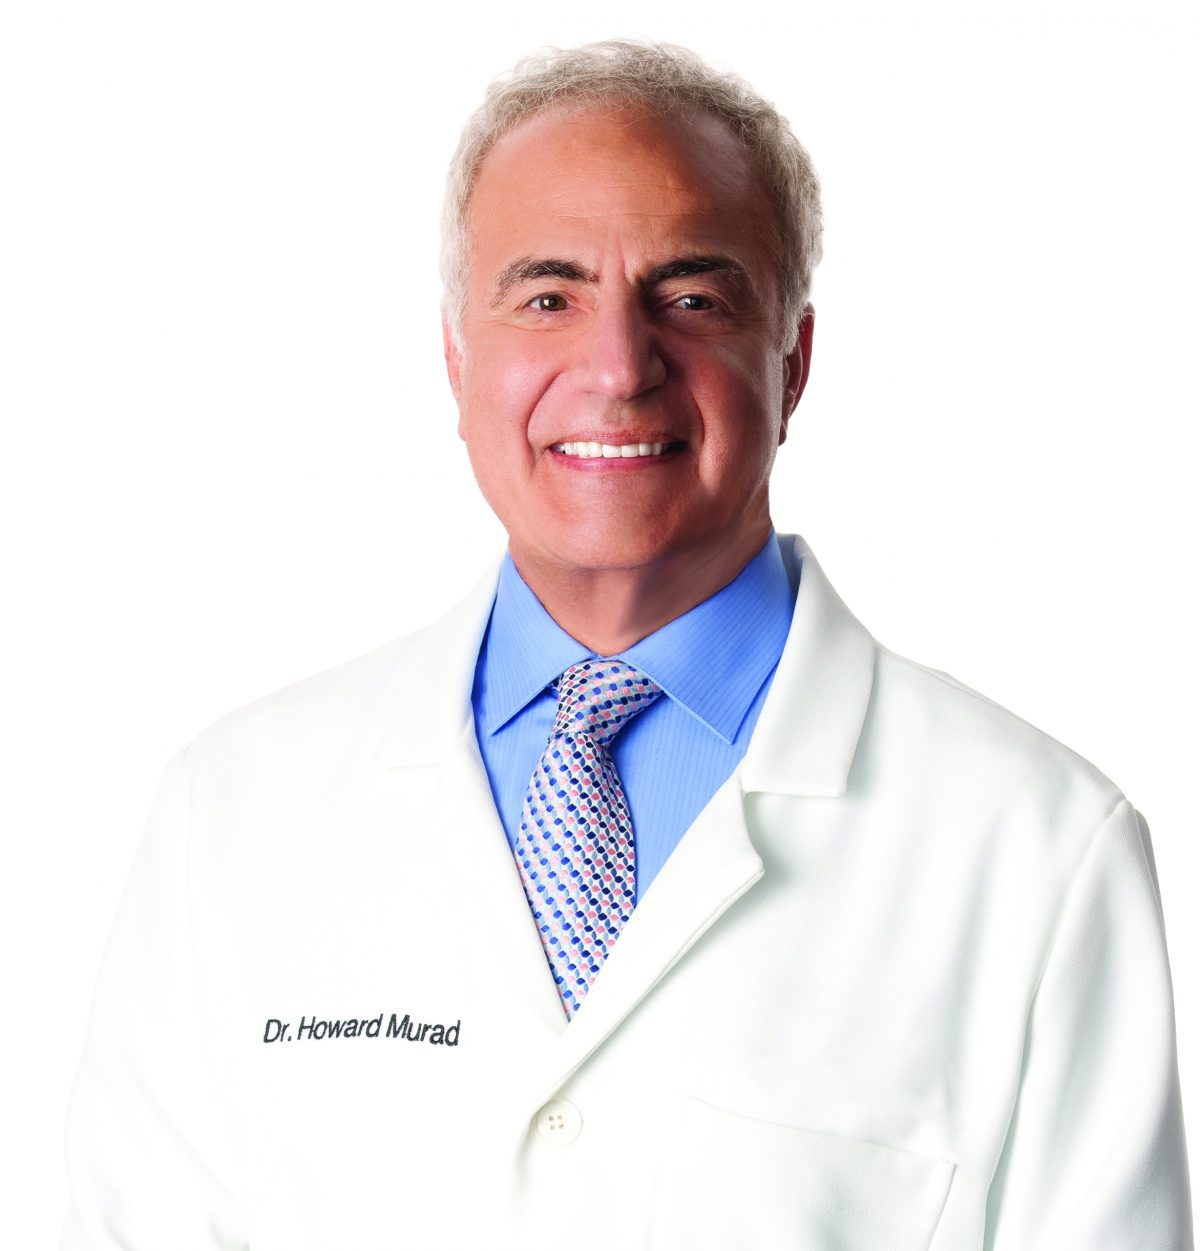 Five Rules For Life: Dr. Howard Murad